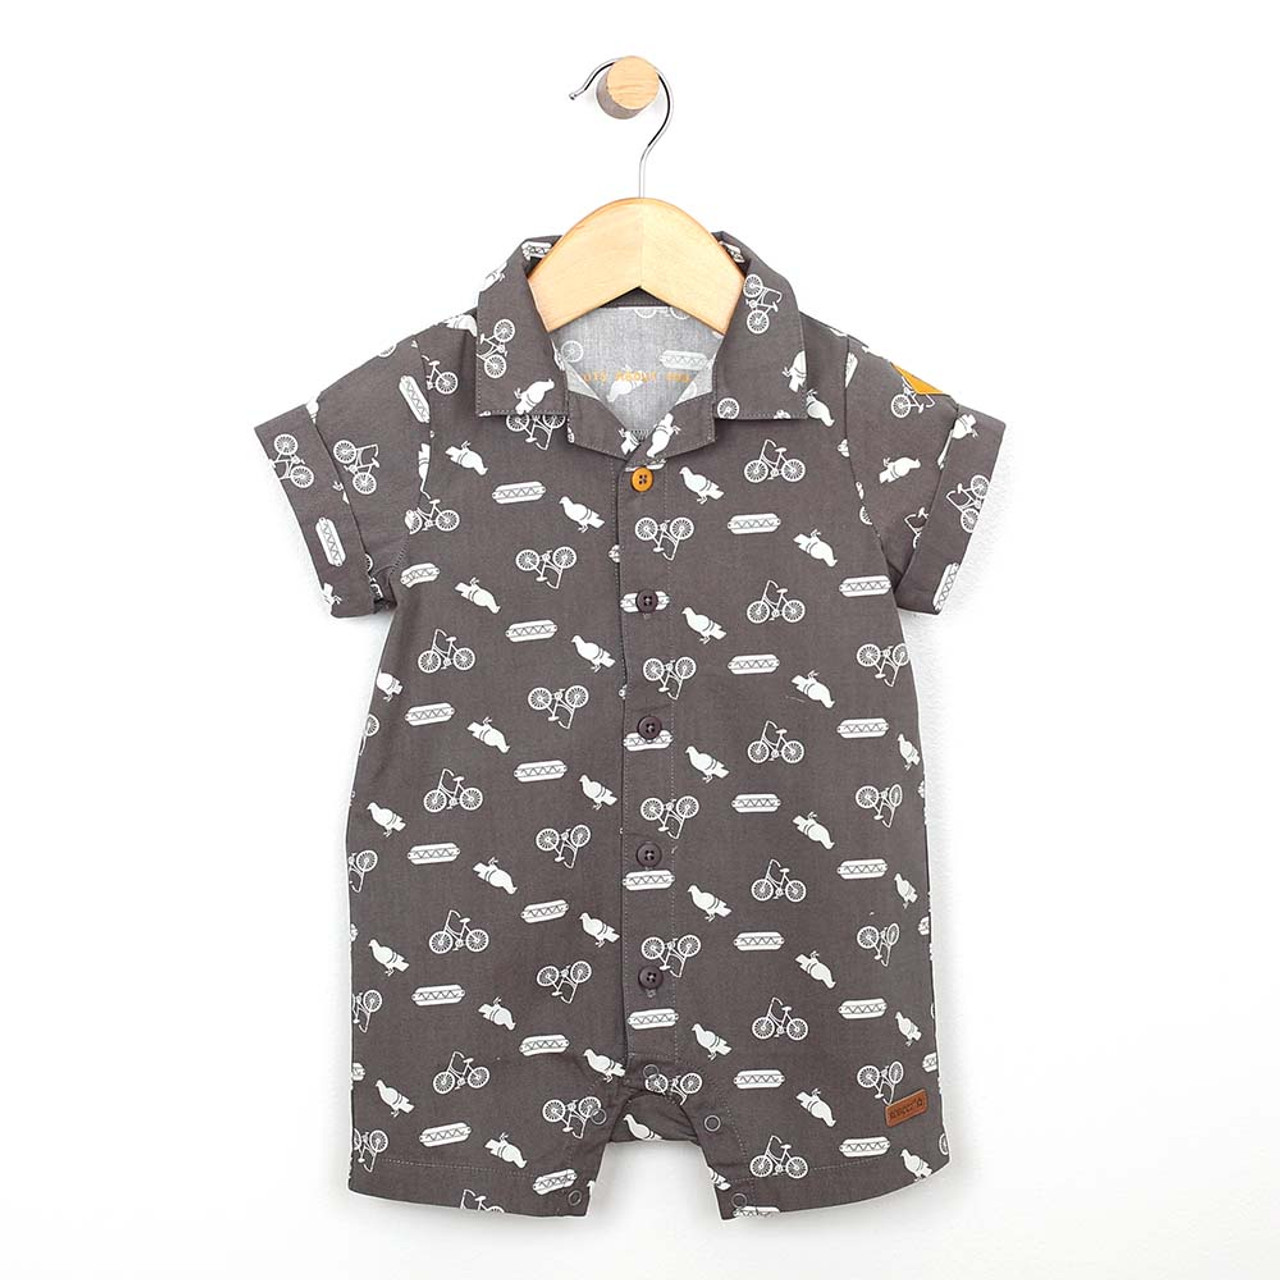 53ed3c9ce81 Grey cotton one piece romper for baby and toddler boys. Screen printed with  icons.